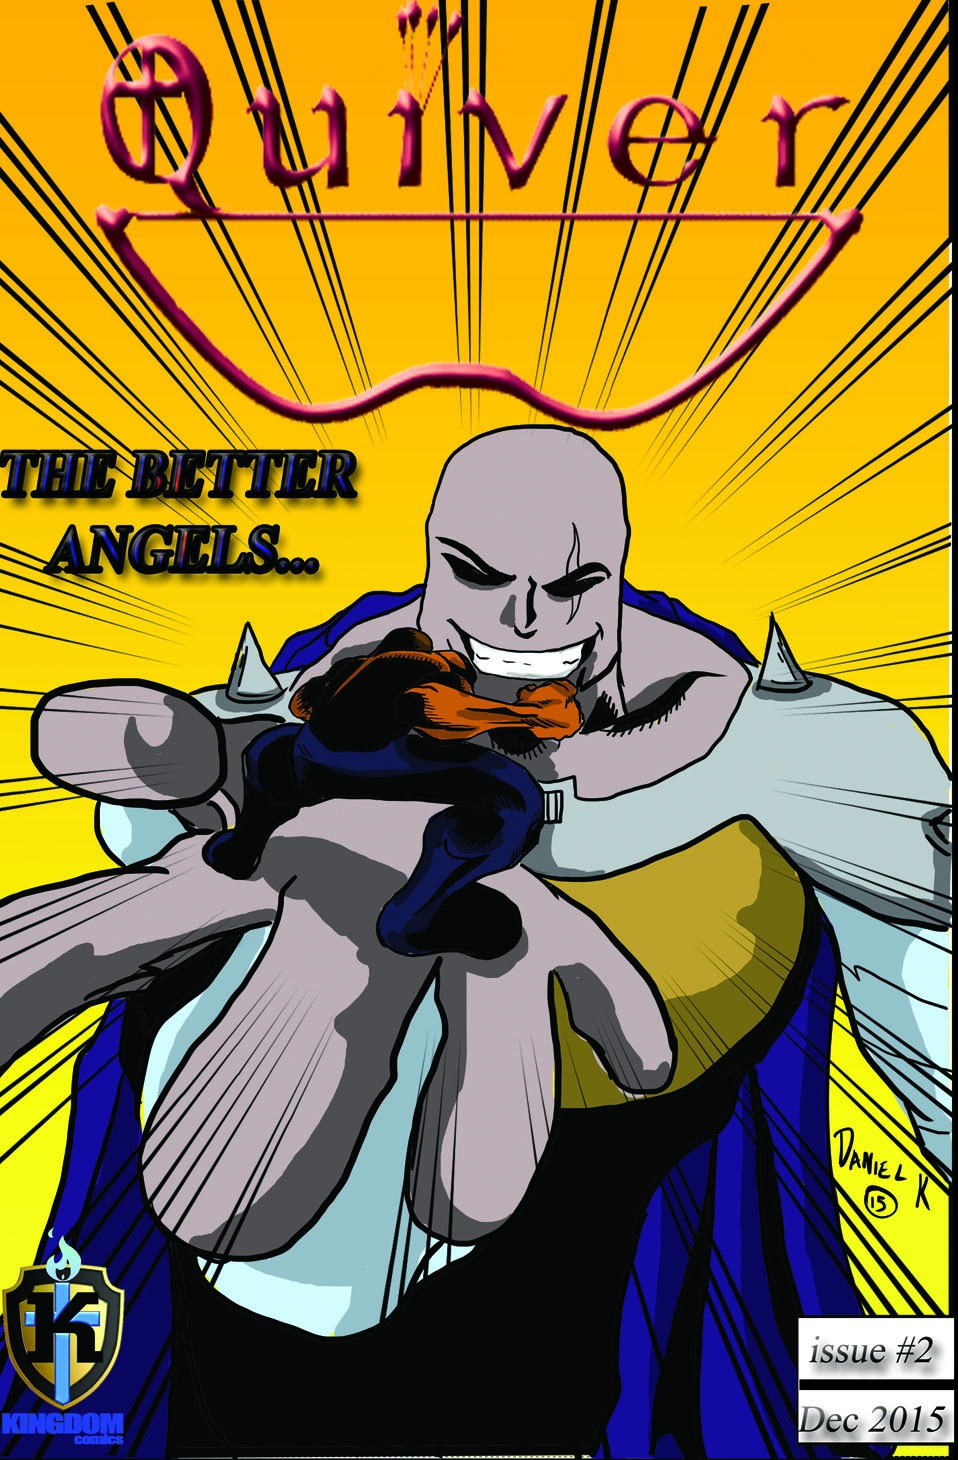 Quiver #2: The Better Angels (Digital download)